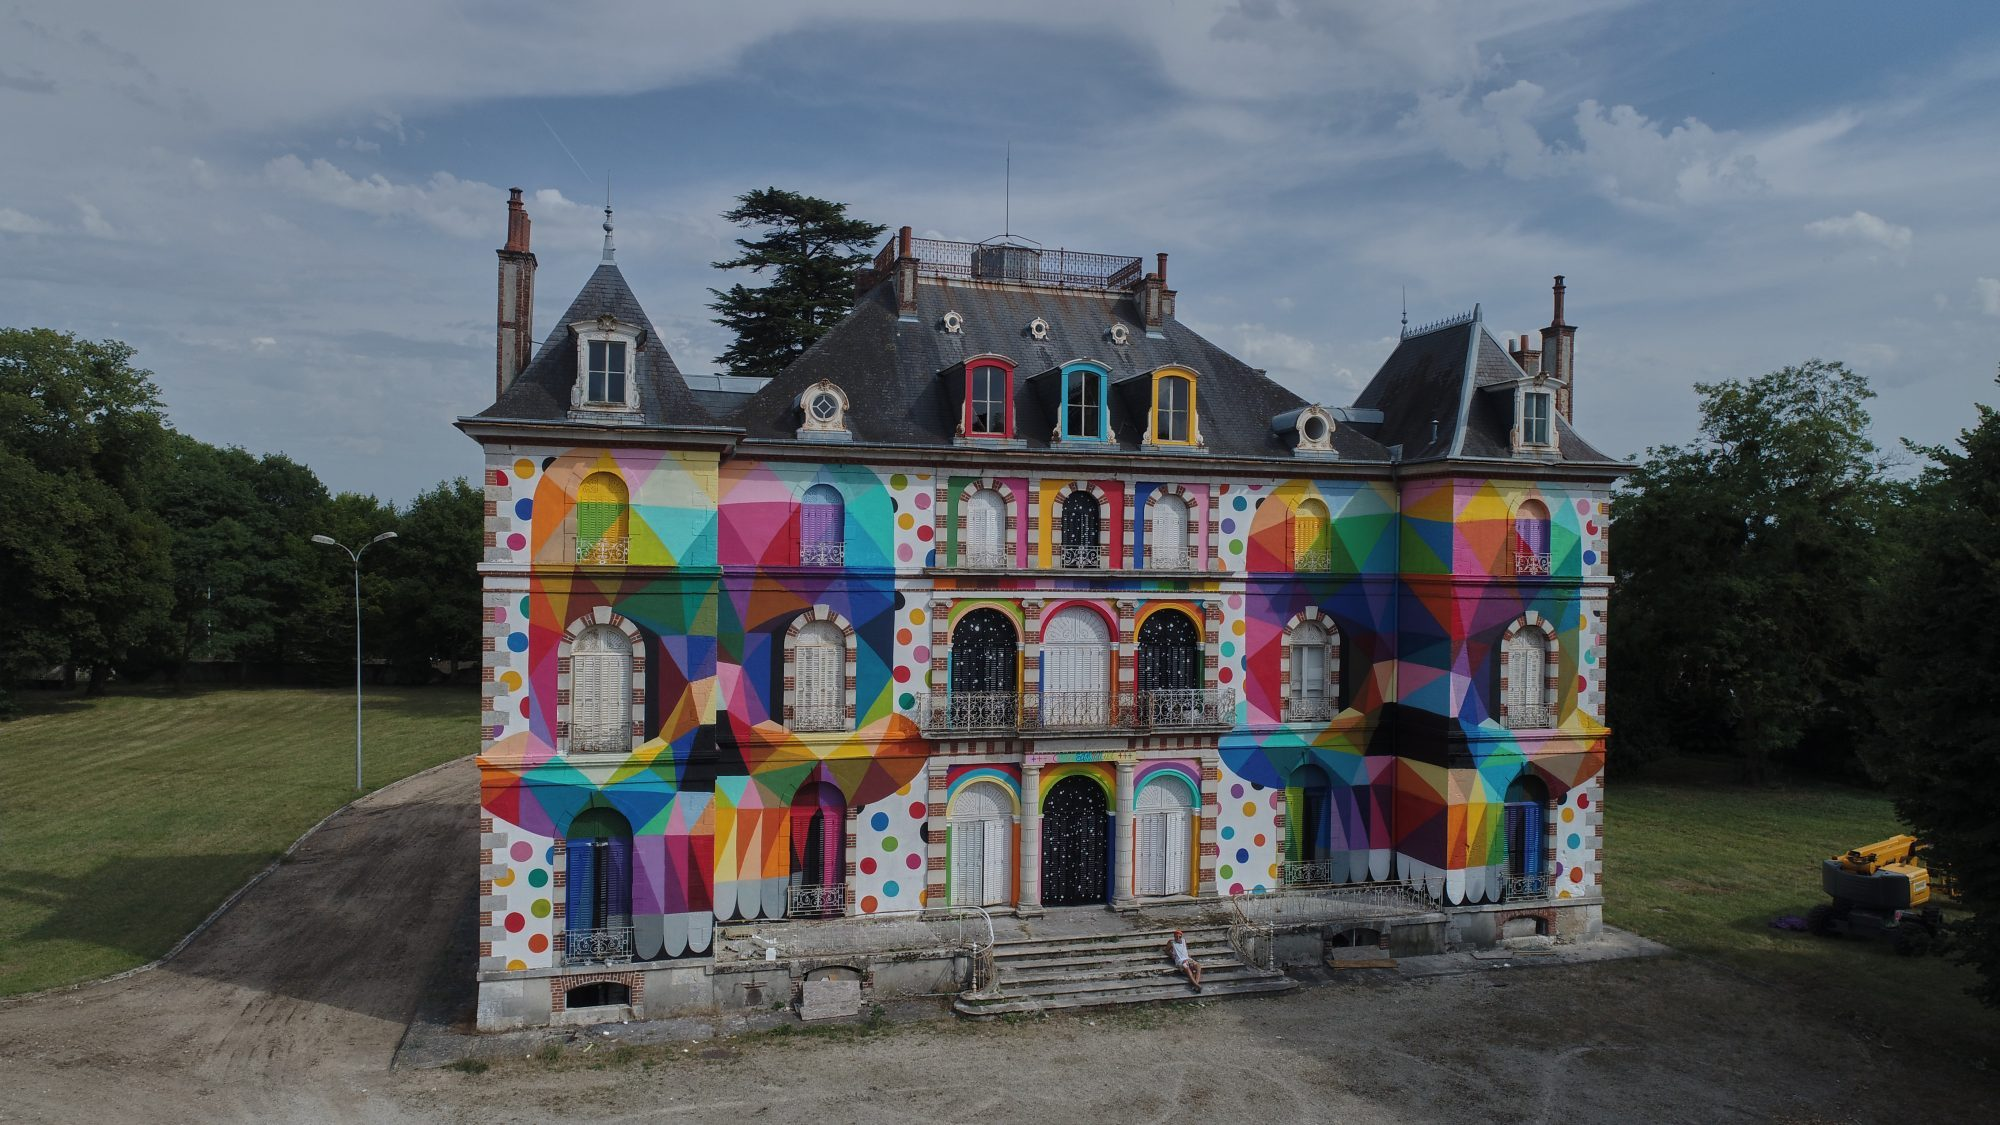 A Spanish pop artist gave this 19th century French castle a psychedelic makeover